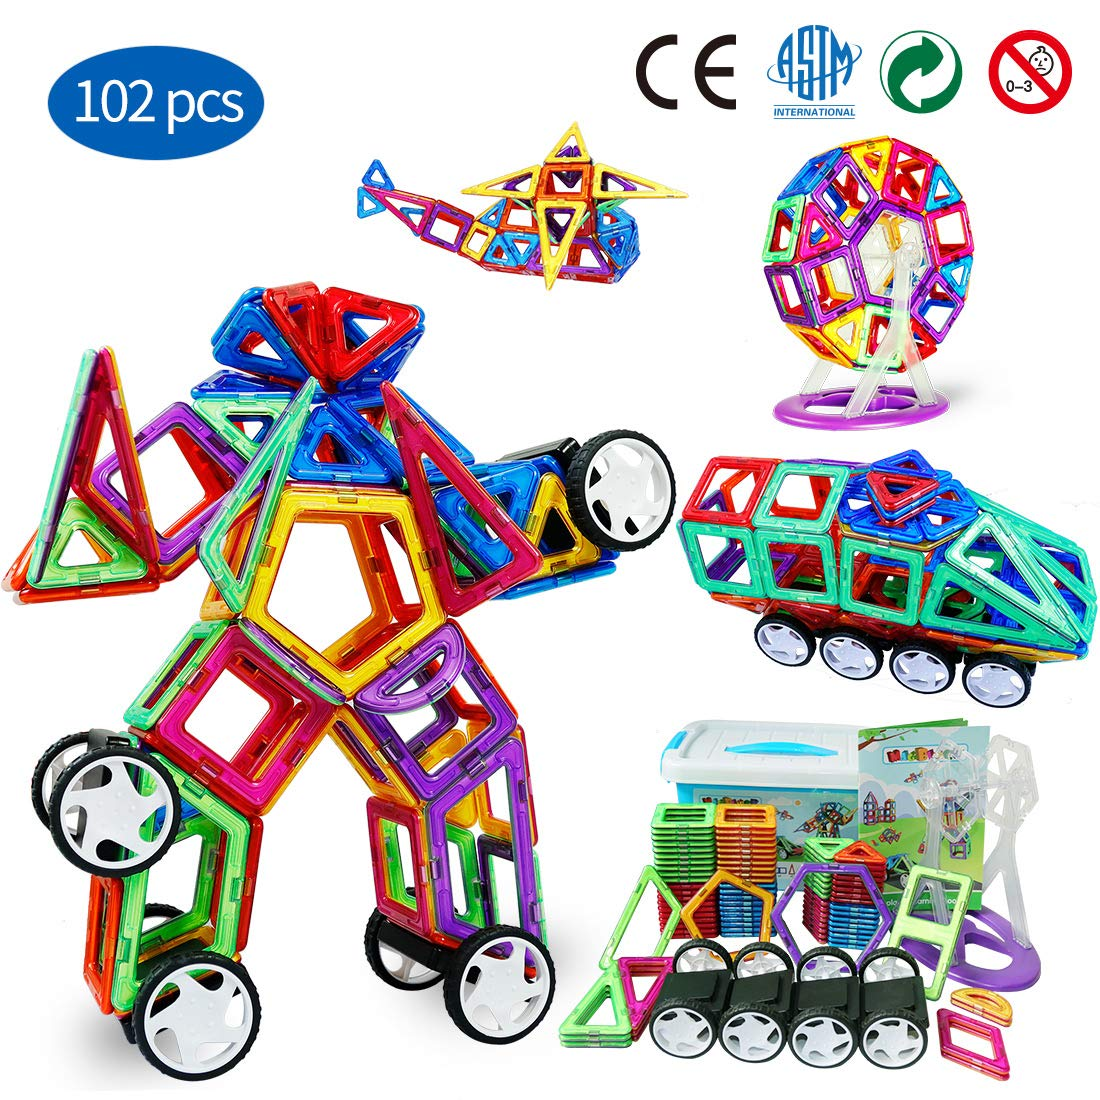 Magnetic Blocks STEM Educational Gifts and Toys Set for Boys,Magneitc Tiles are Best Birthday Gift for Kids 102PCS